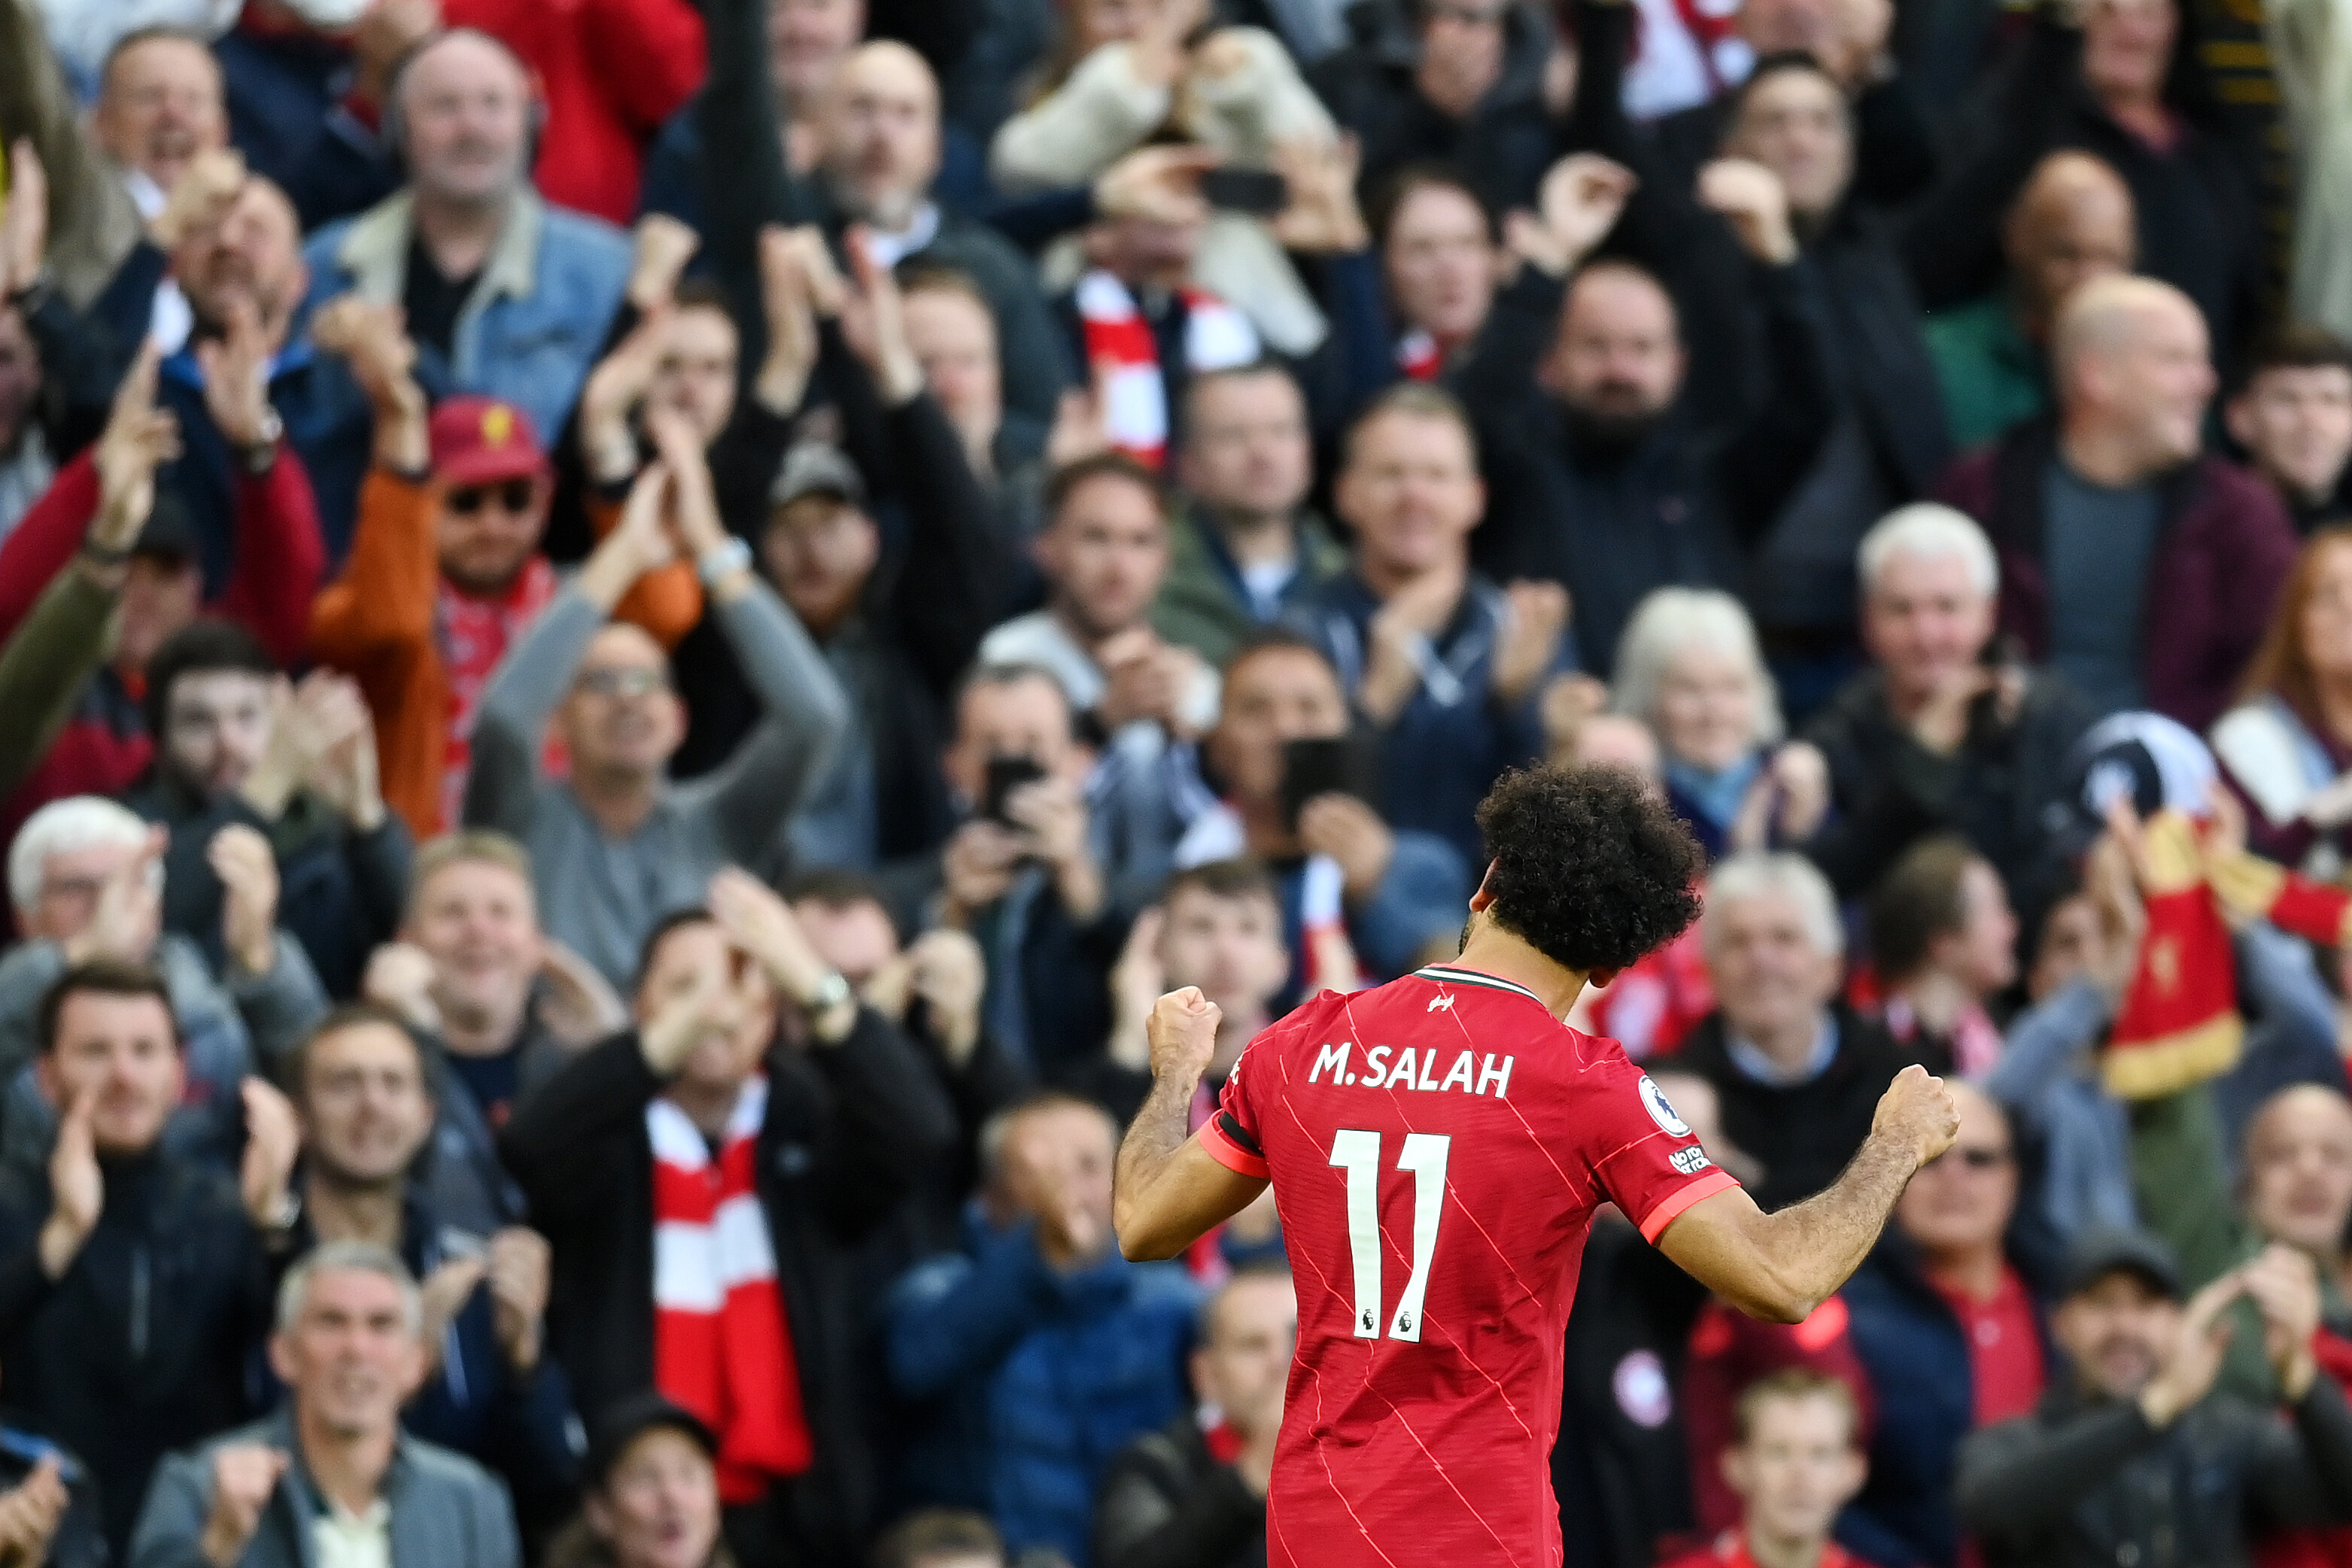 Mohamed Salah scores stunning solo goal as Liverpool draws with Manchester City